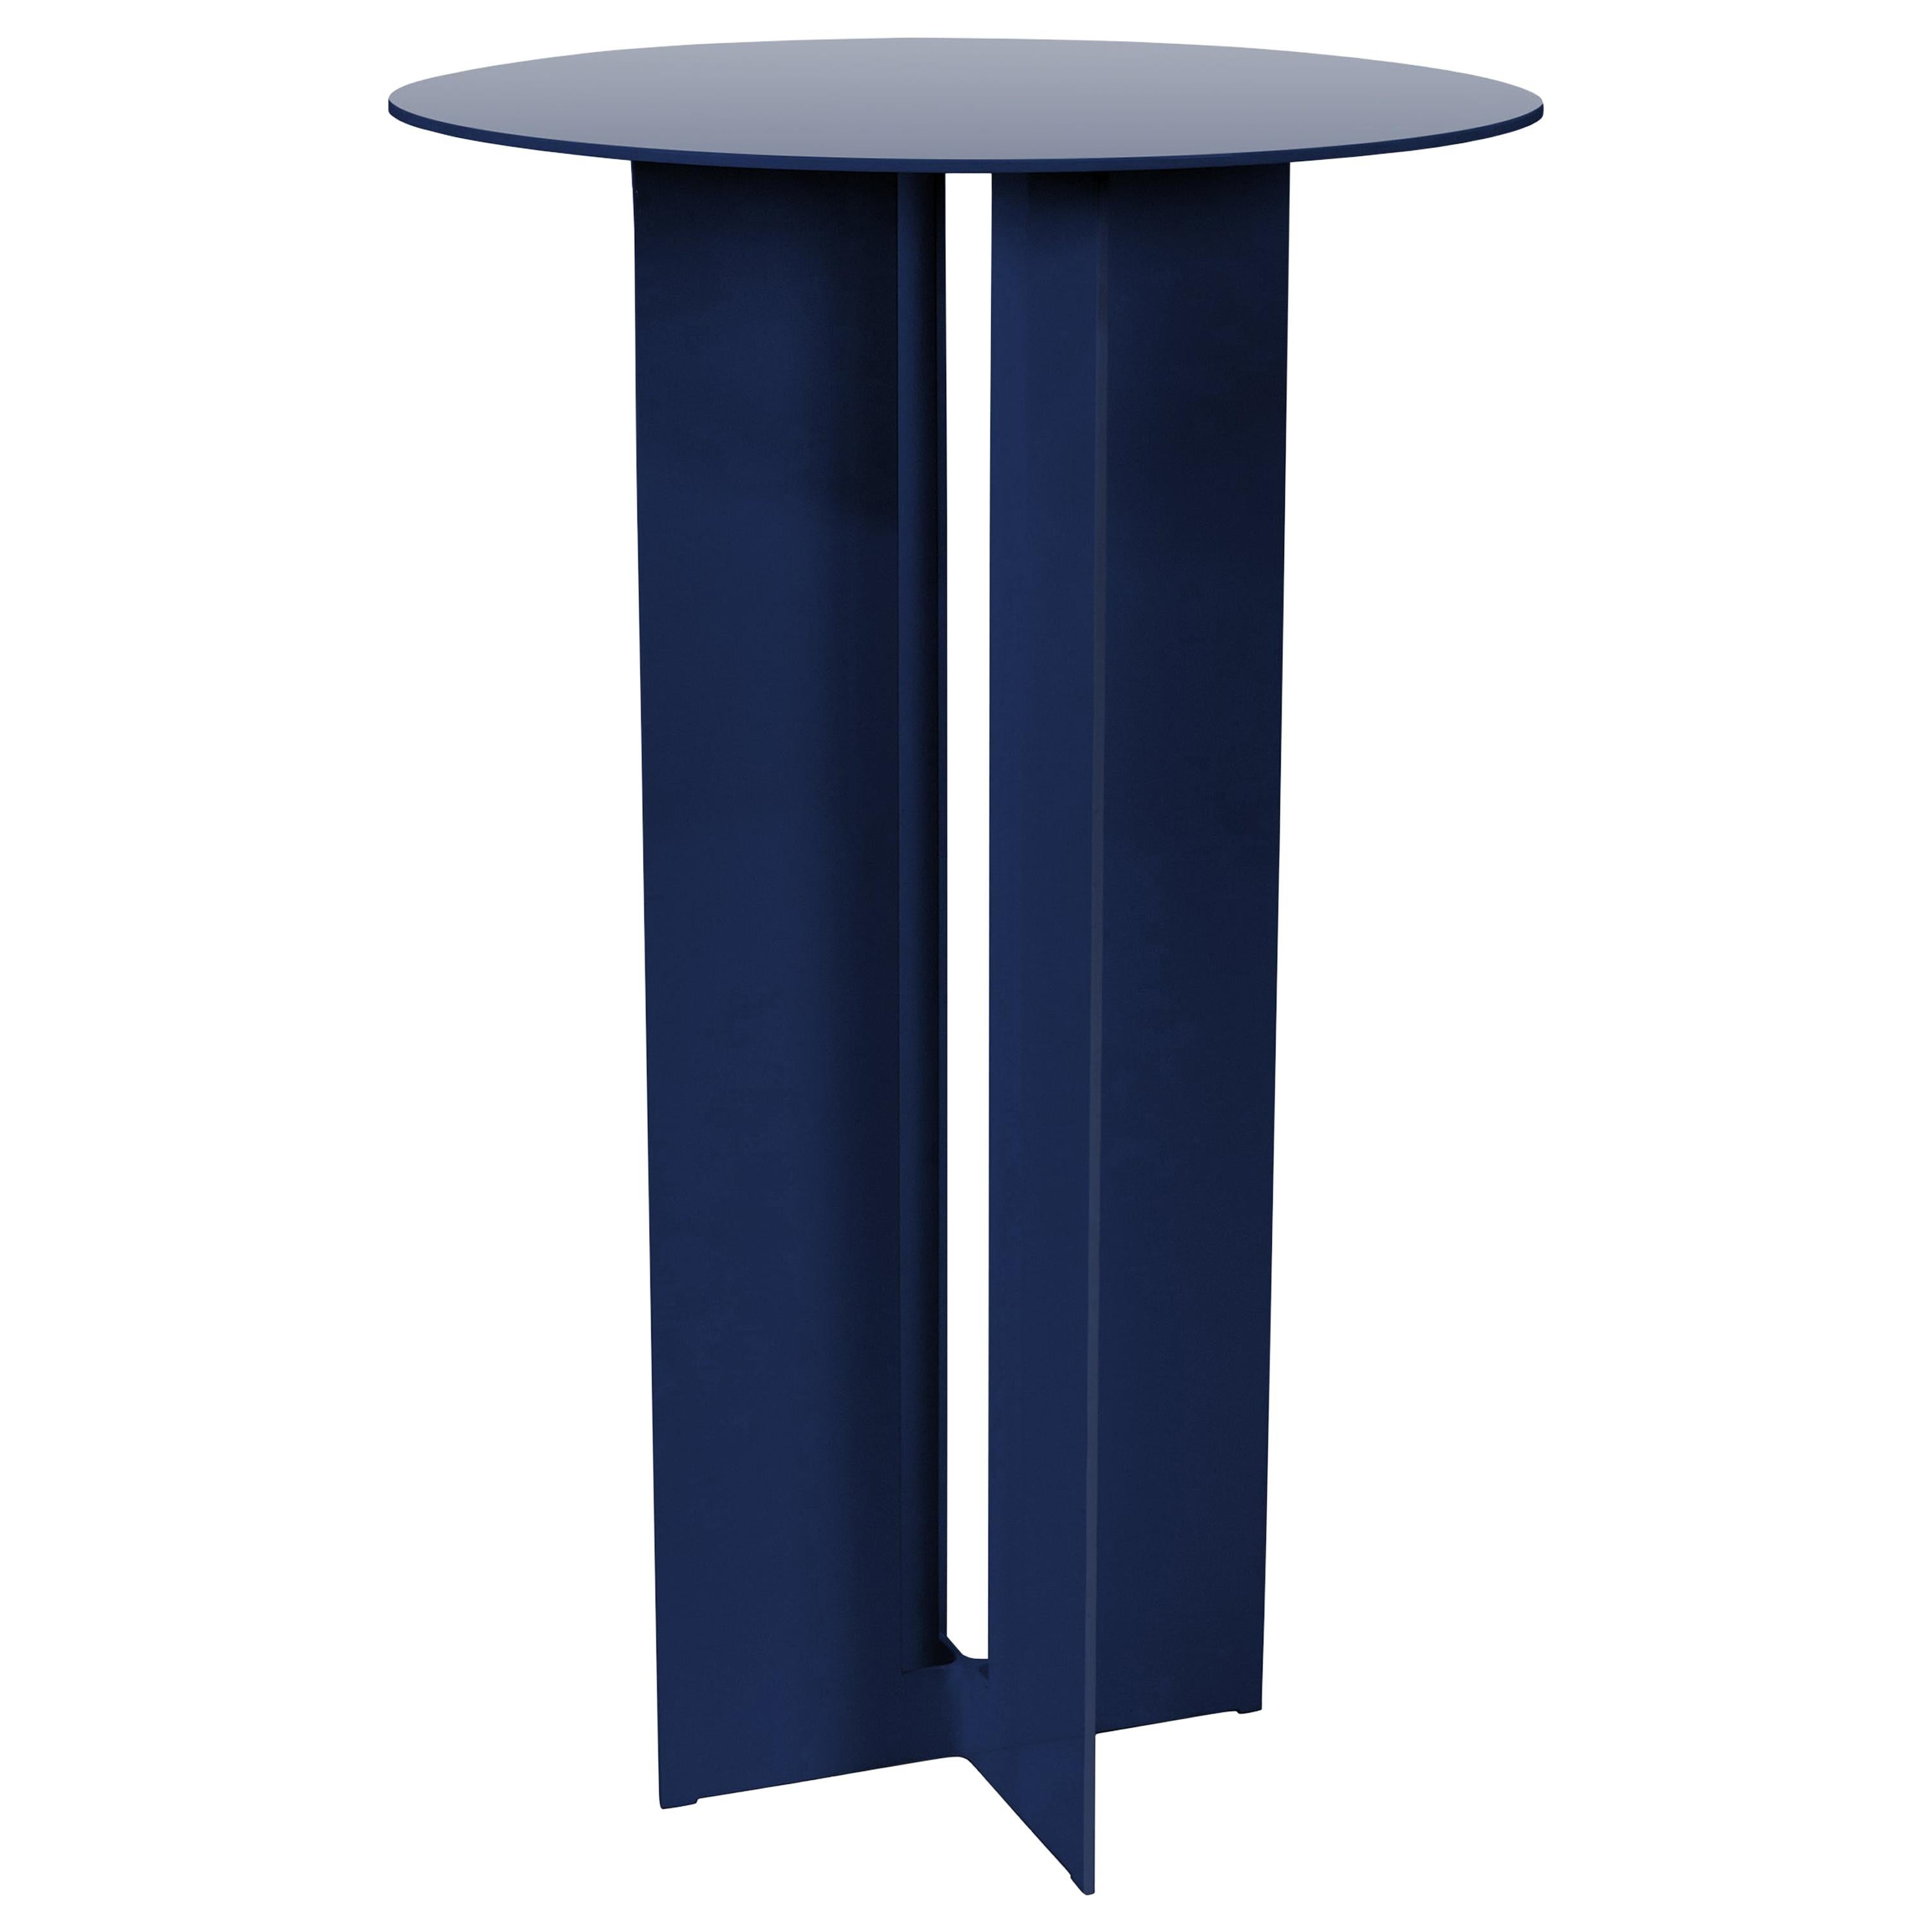 Mers Cafe Table in Powdercoat Aluminum Pacific Blue